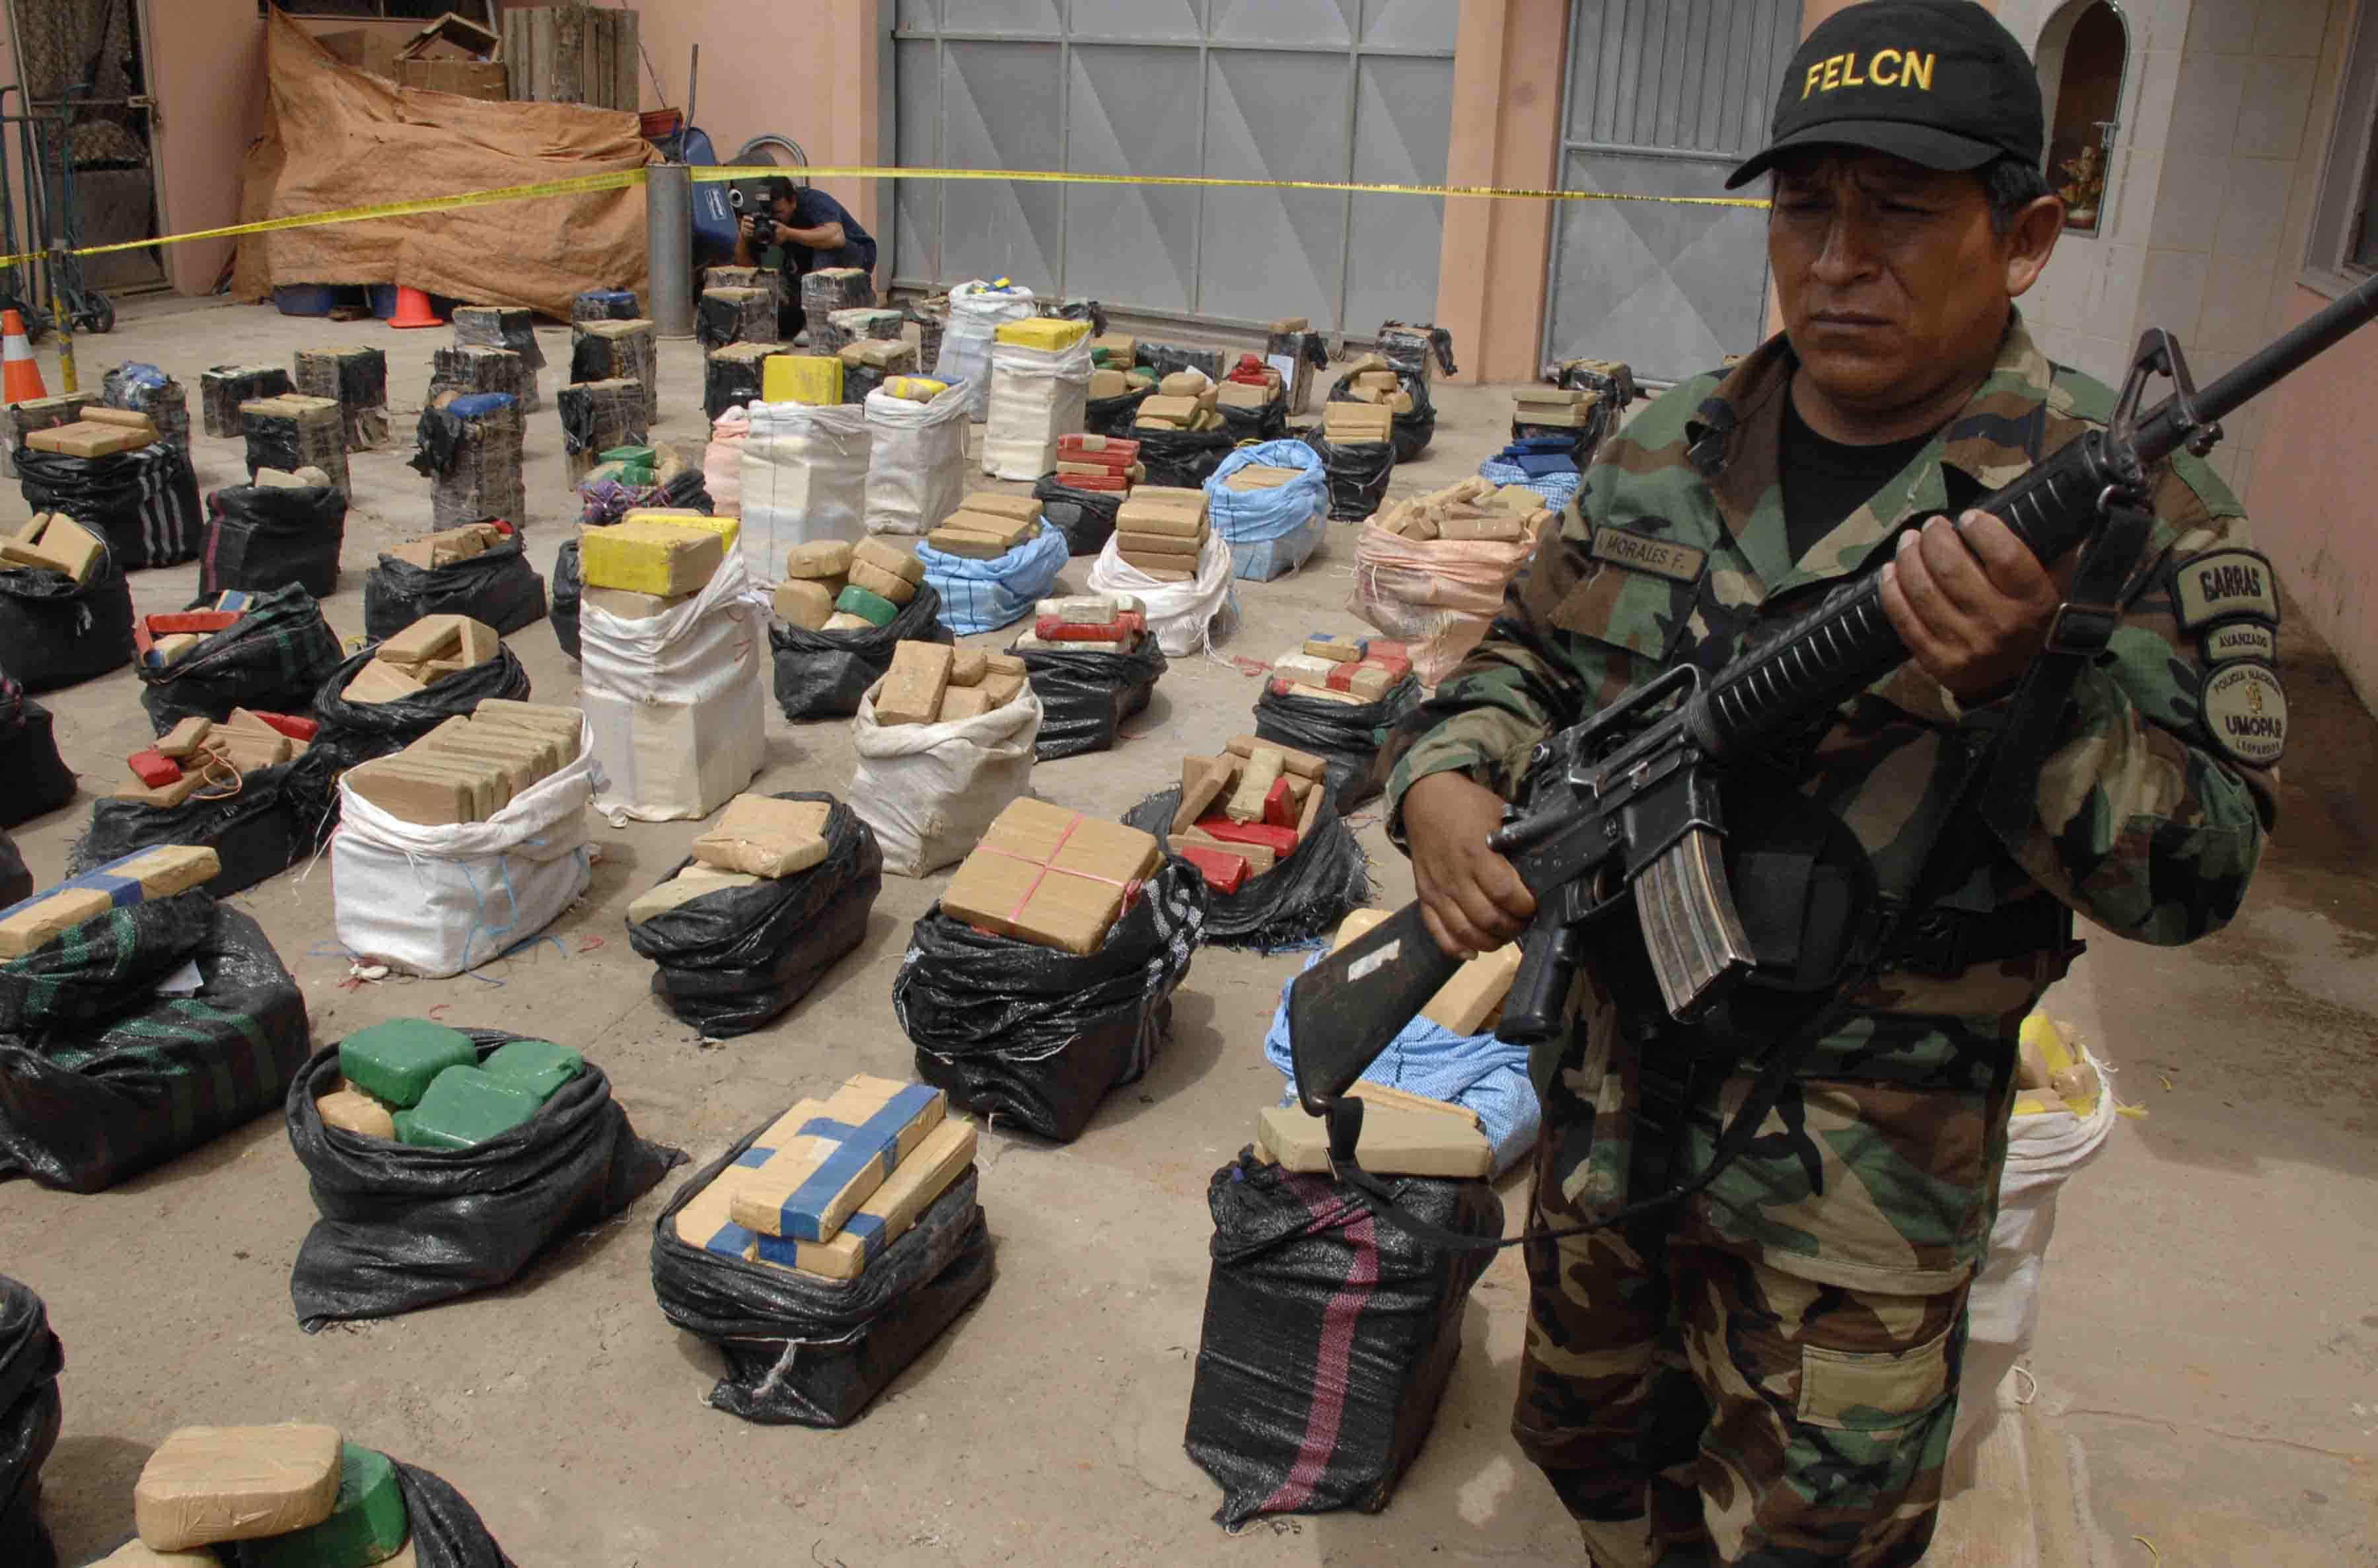 drug trafficing Browse drug trafficking news, research and analysis from the conversation.